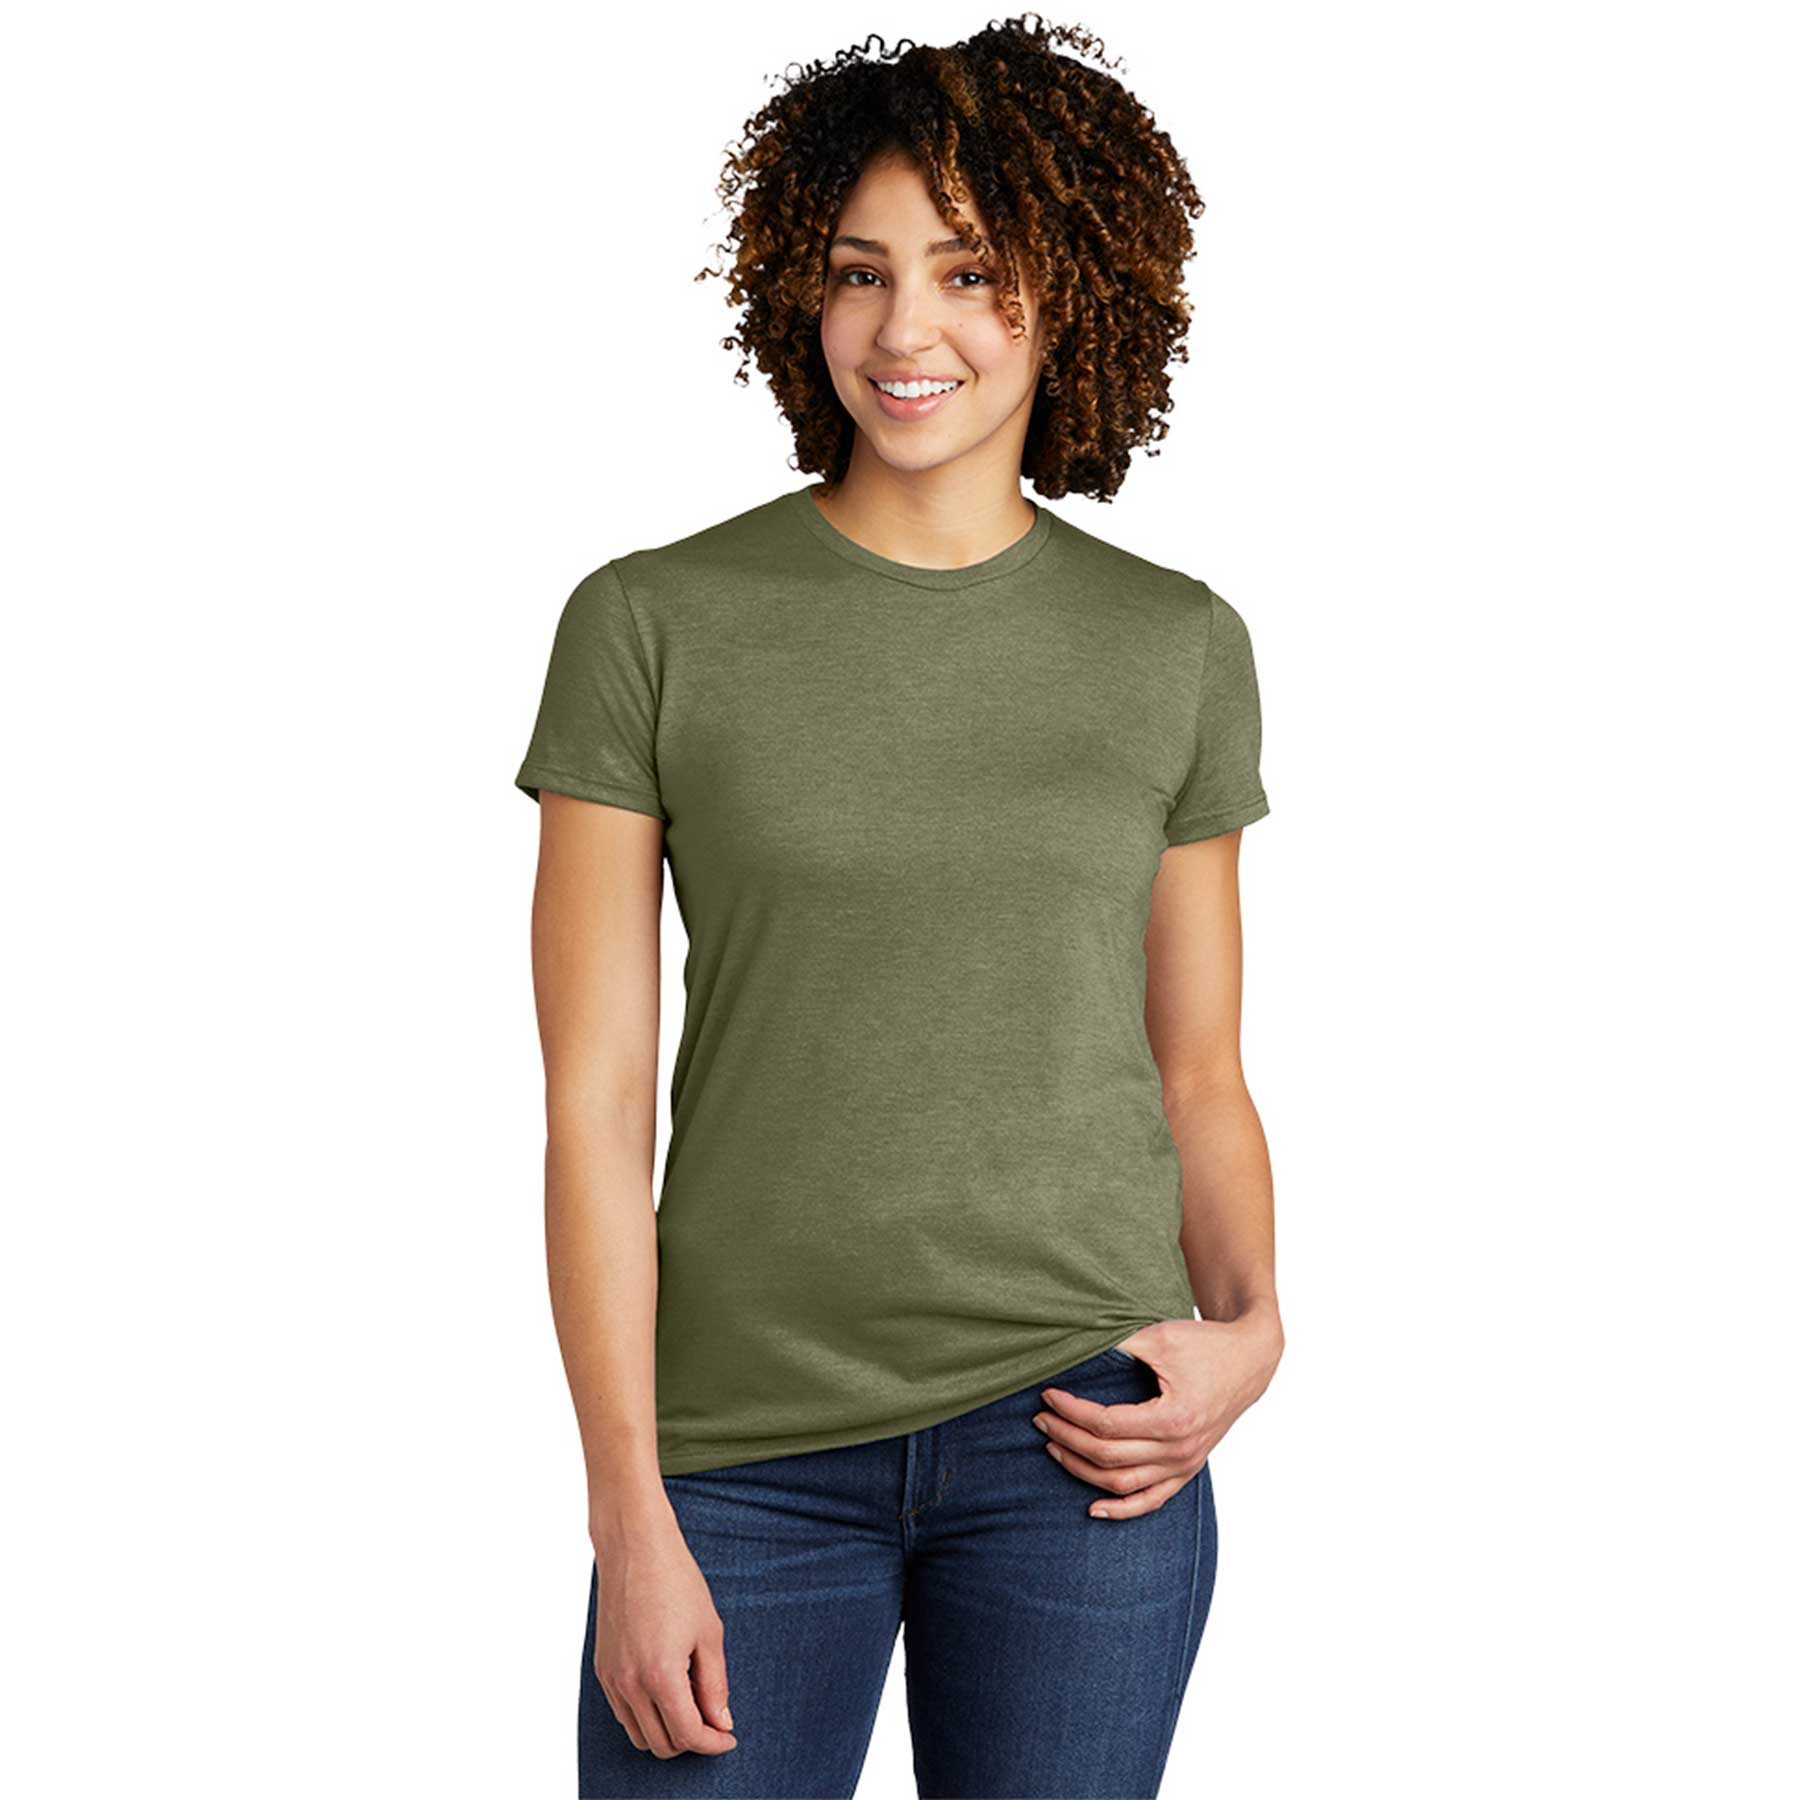 Apparel Catalog Women's T-Shirts